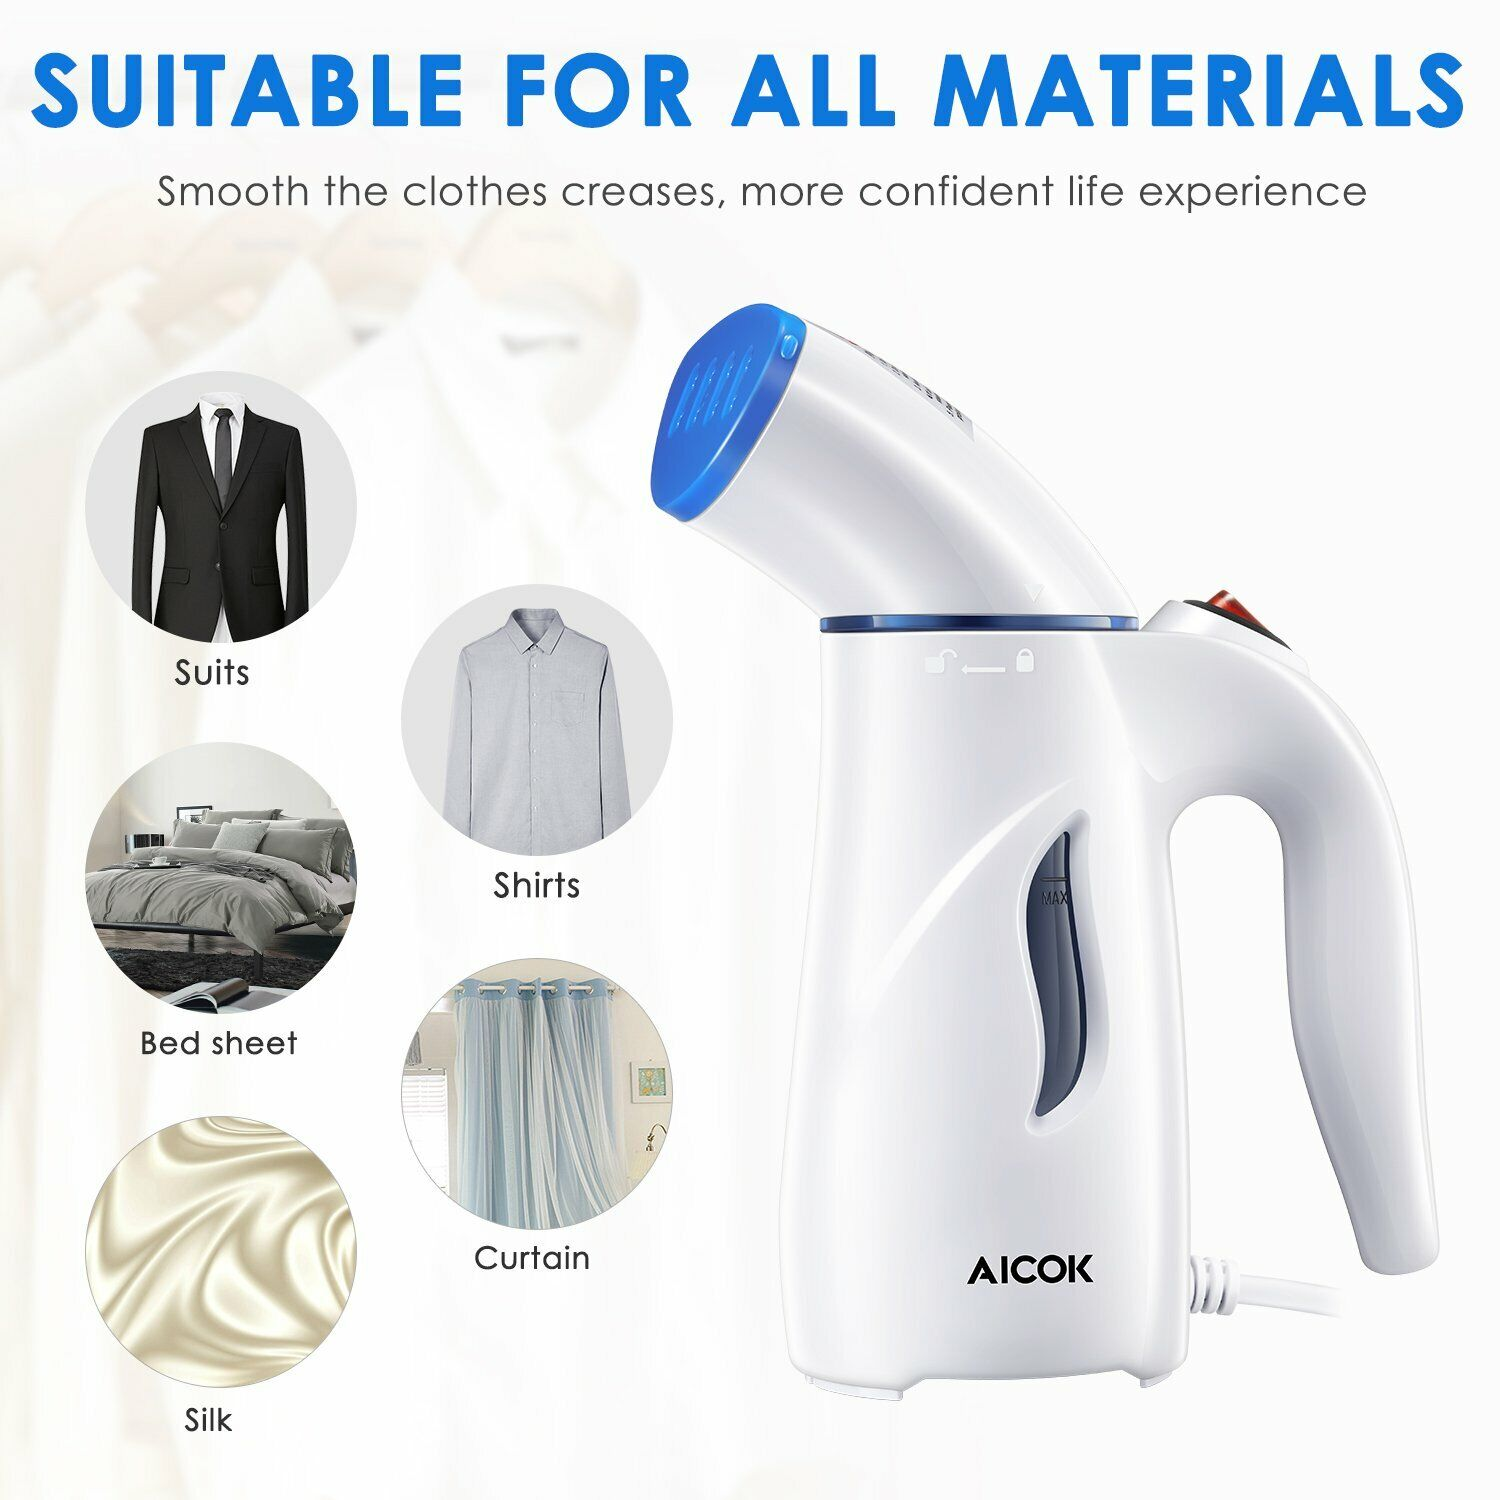 Aicok Travel Garment Steamer, 4-in-1 Fabric Steamer,  Powerf